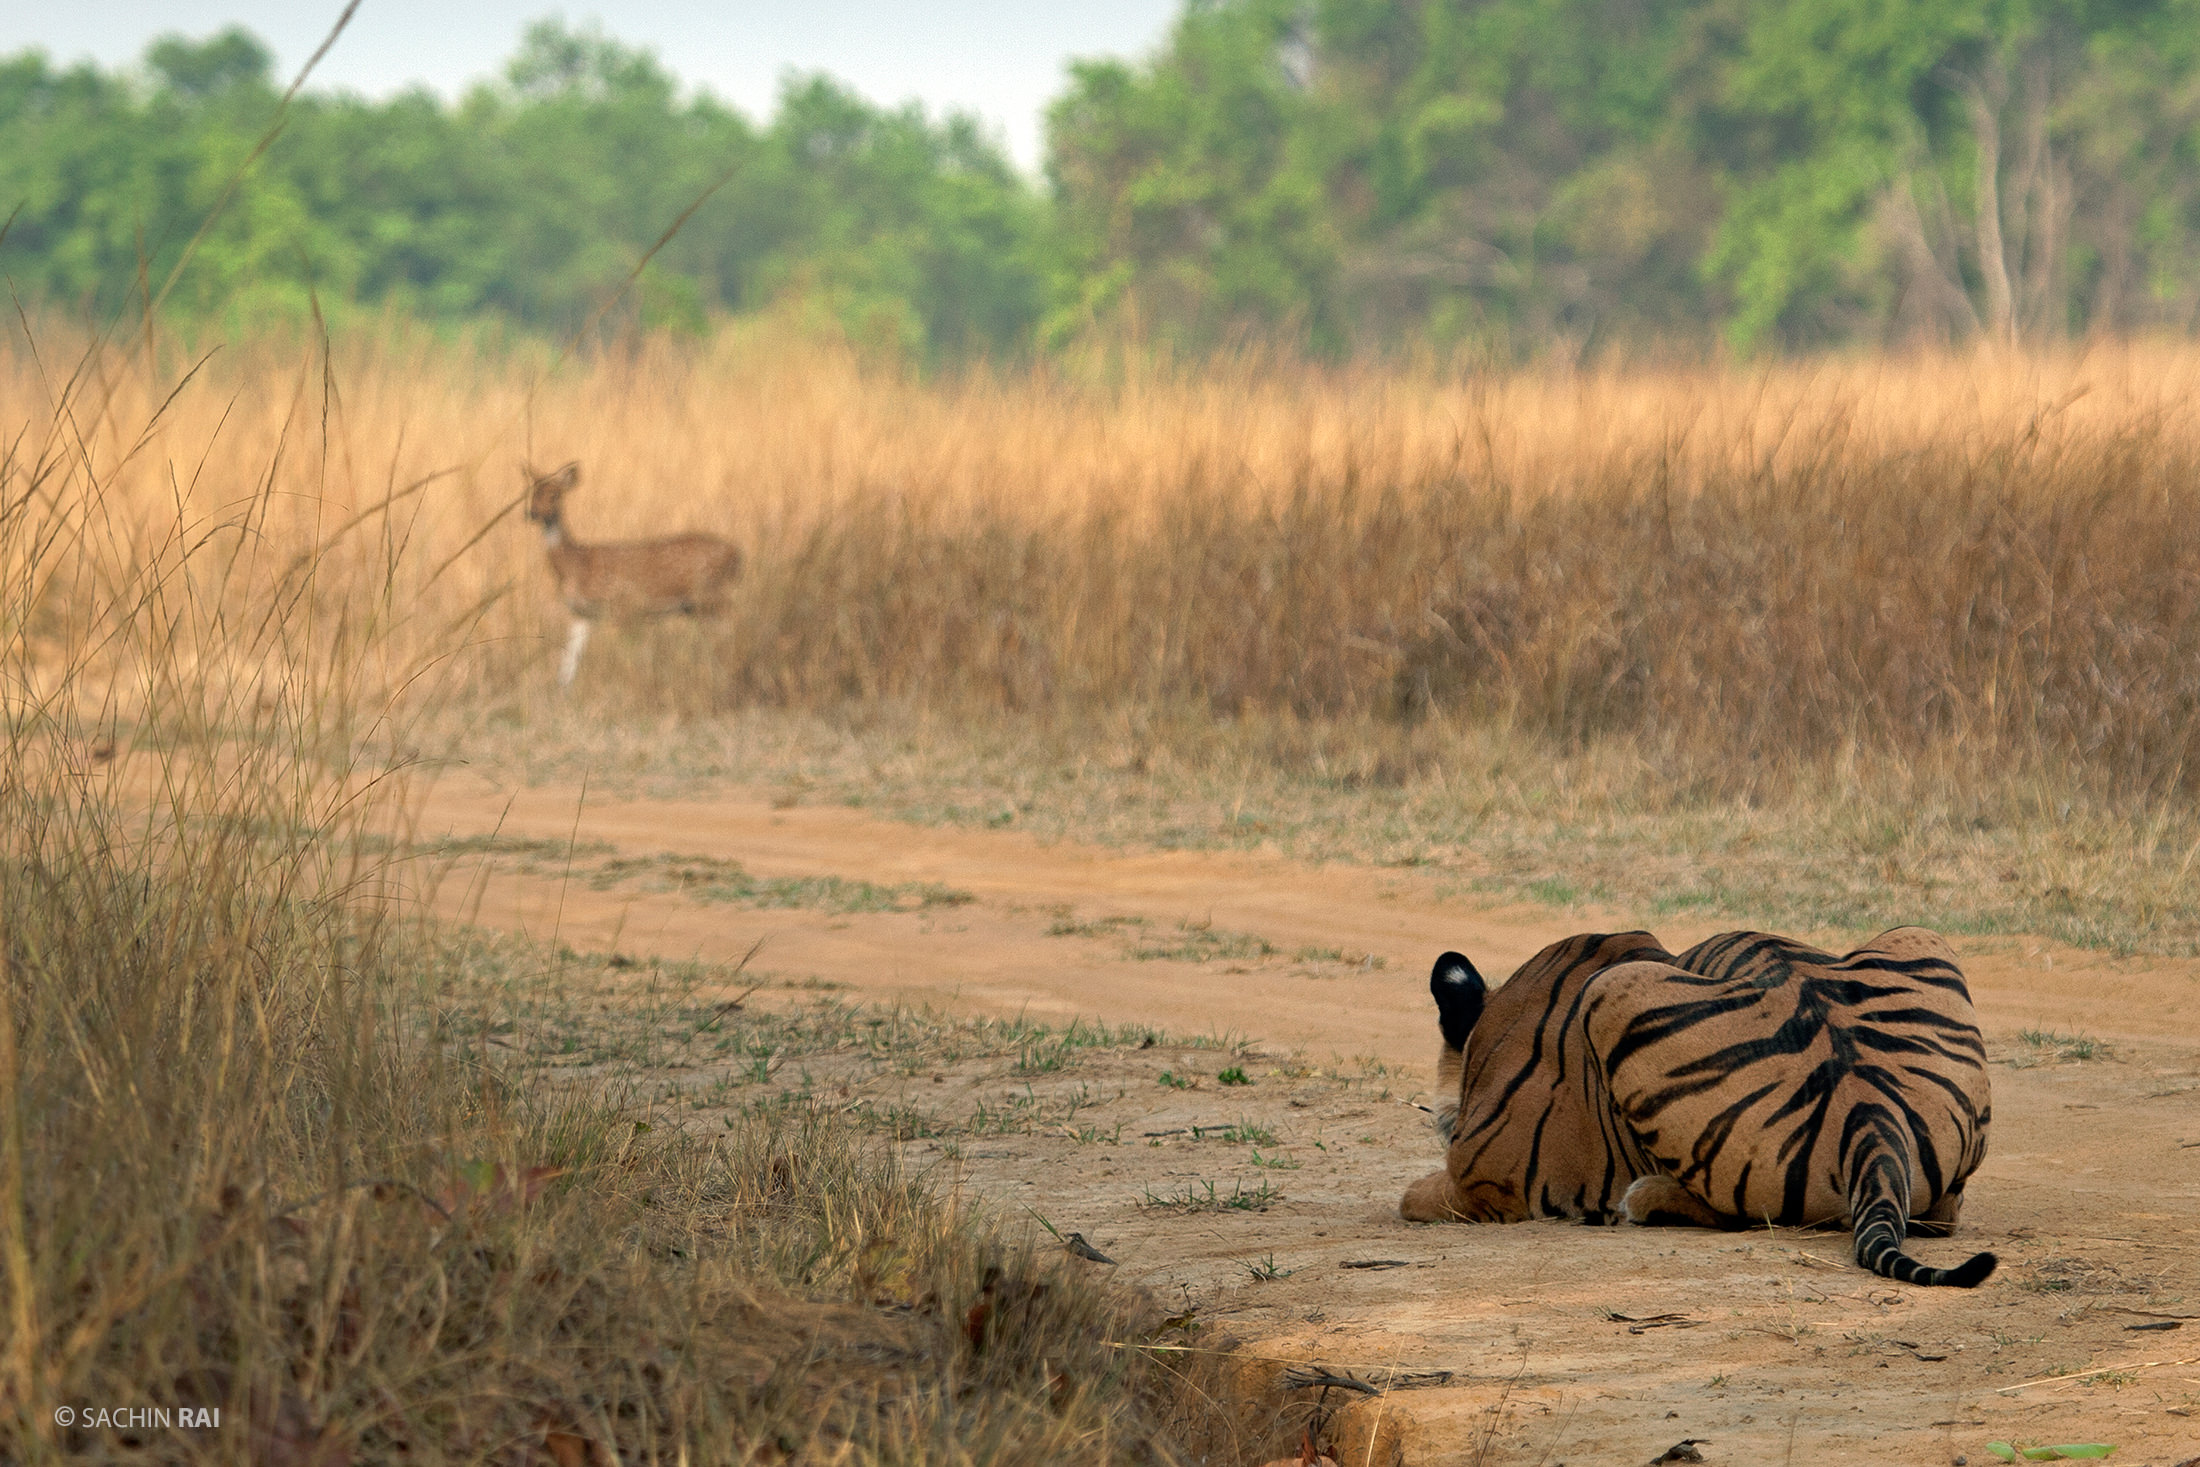 A tiger stalking a spotted deer.